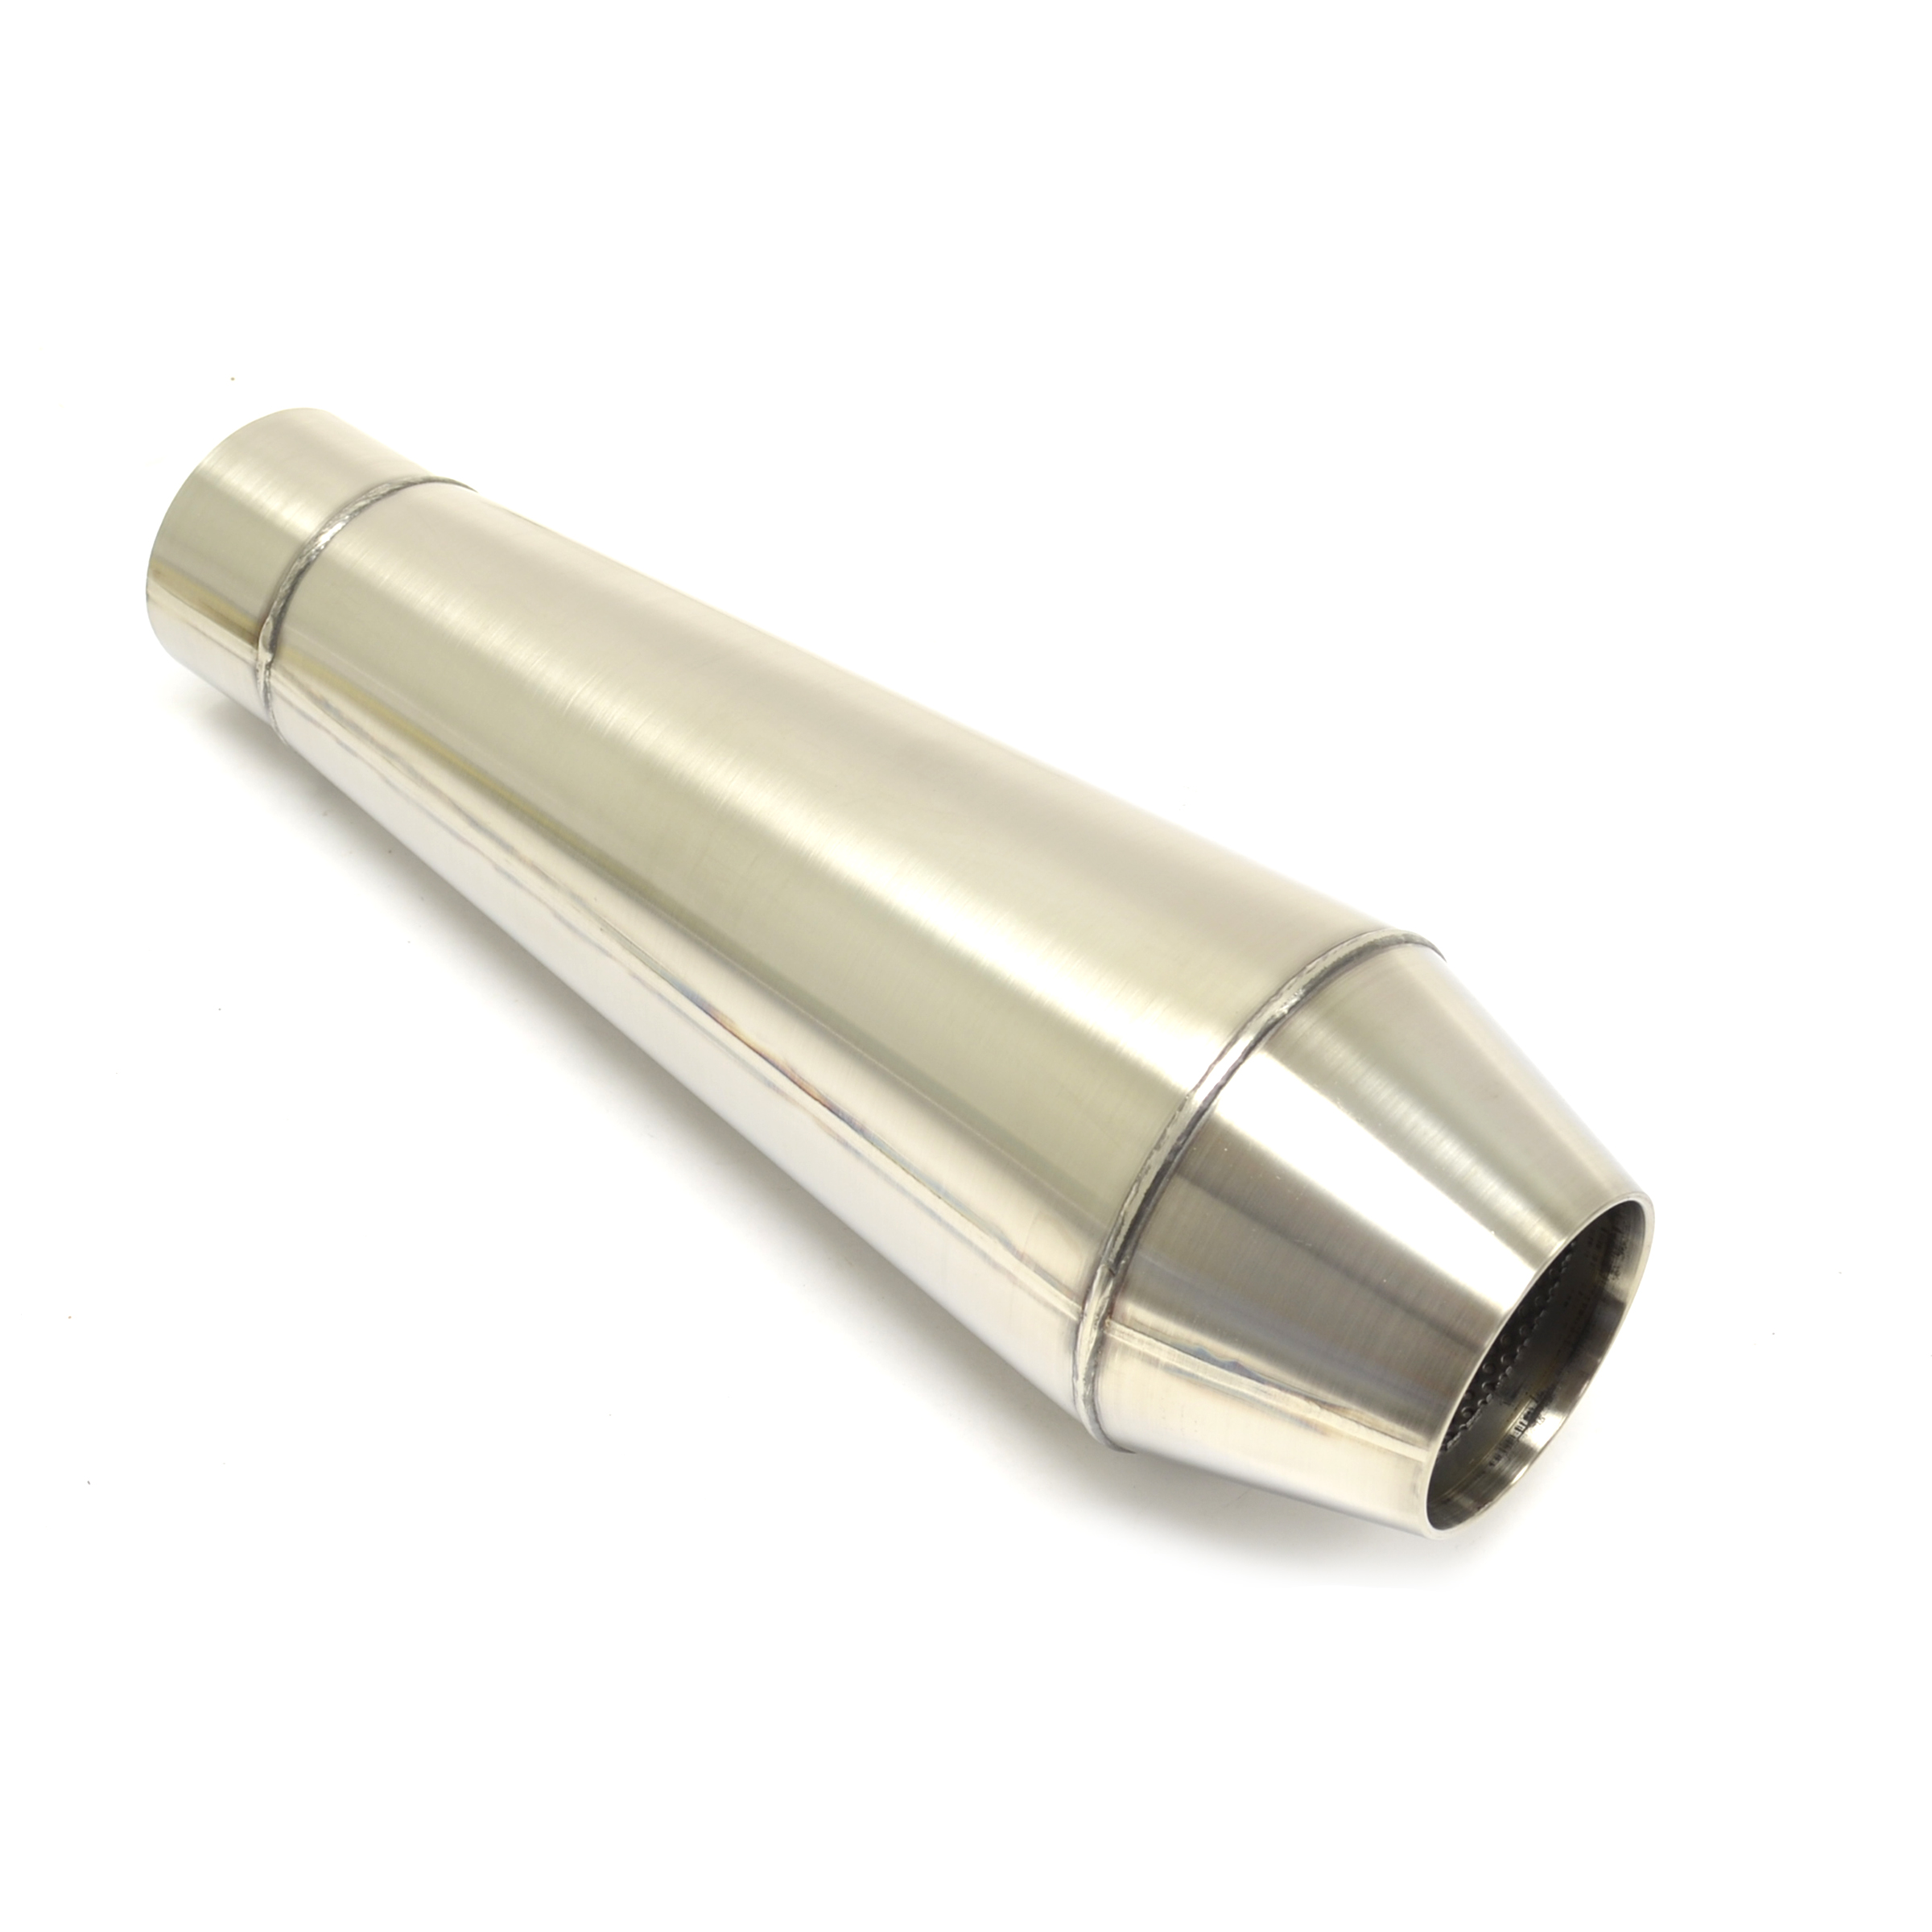 Quot performance steel core muffler reverse cone